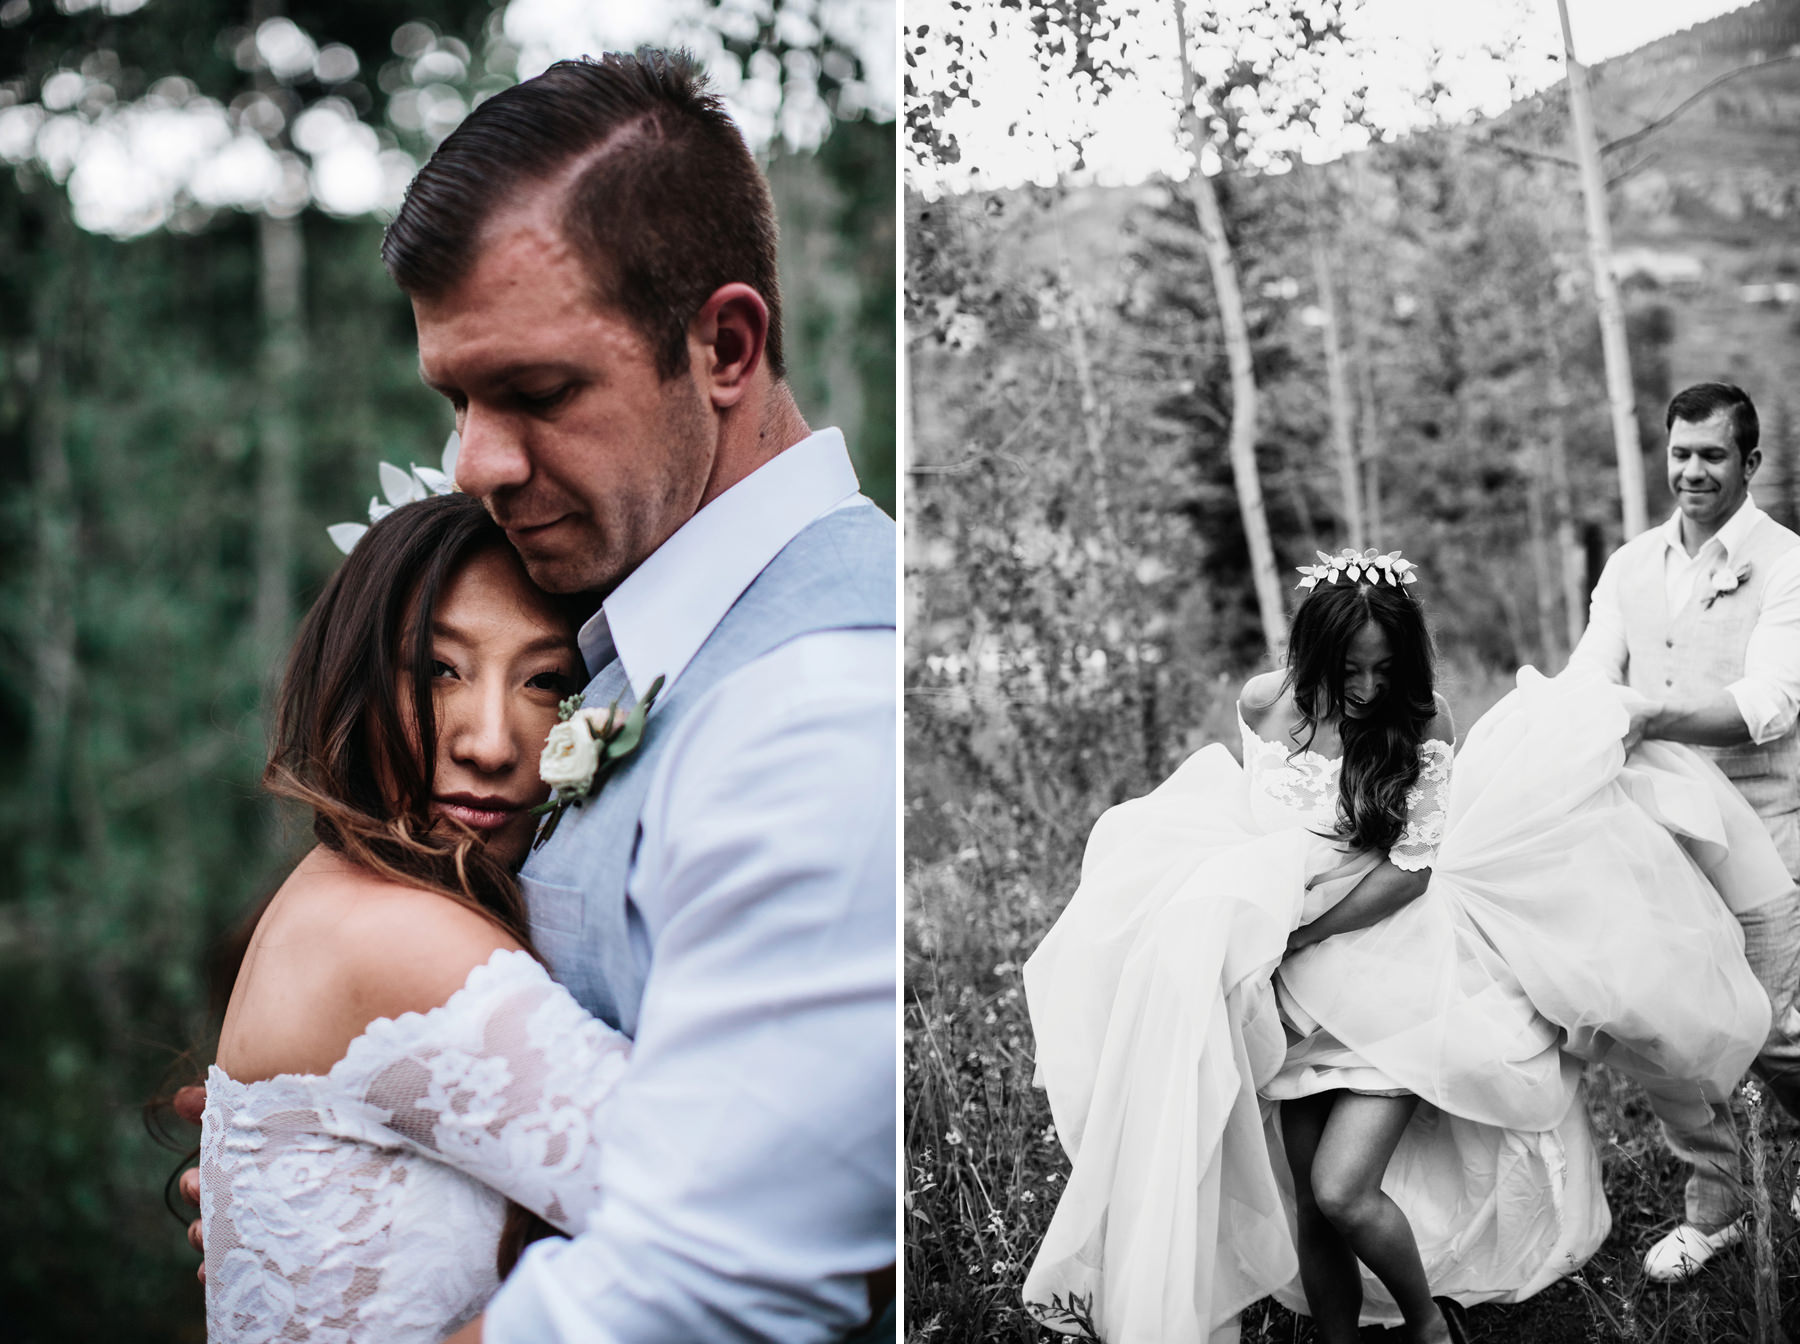 11_Vail Wedding Deck Mountain Top Wedding Vail, Colorado_Kindling Wedding Photography.JPG